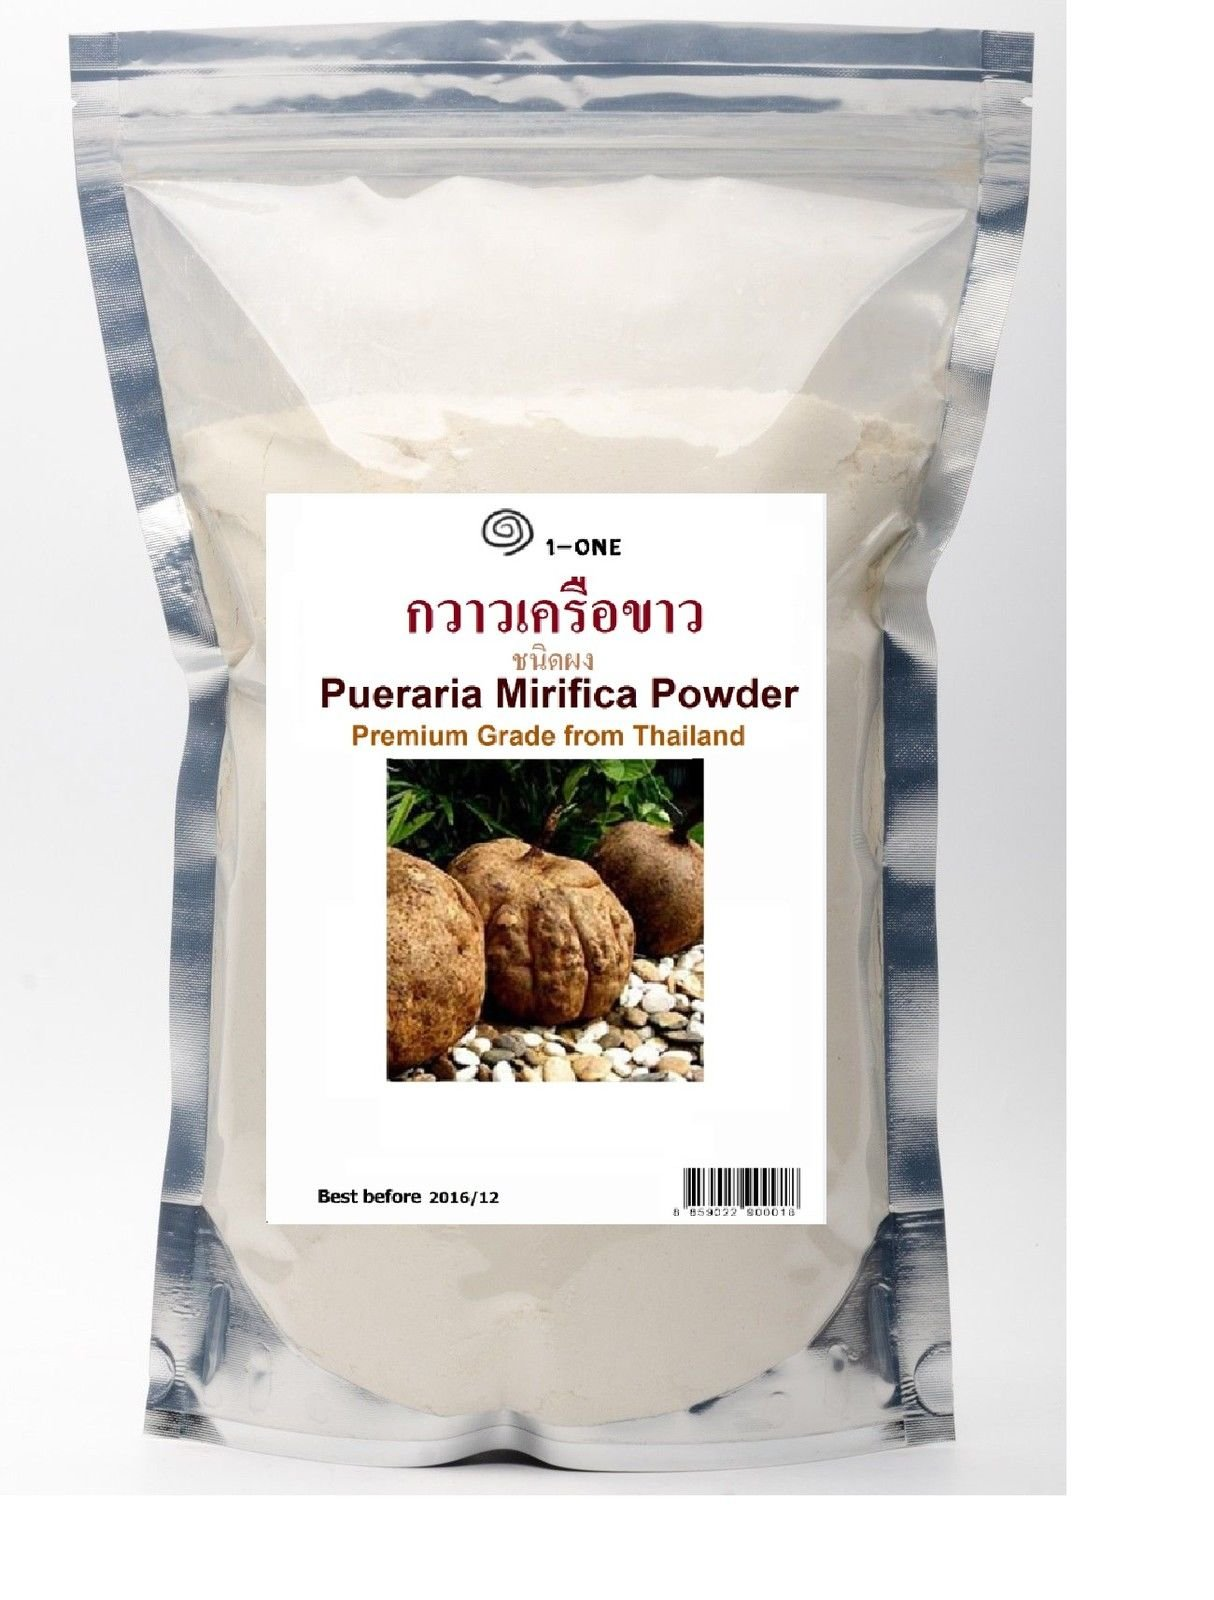 Pueraria Mirifica Powder Natural Breast Enhancer Pure Herb Queen of Herb from Thailand (High Quality Premium Grade) 1000 g. / 1 Kg. by Queen of Thailand Herbs